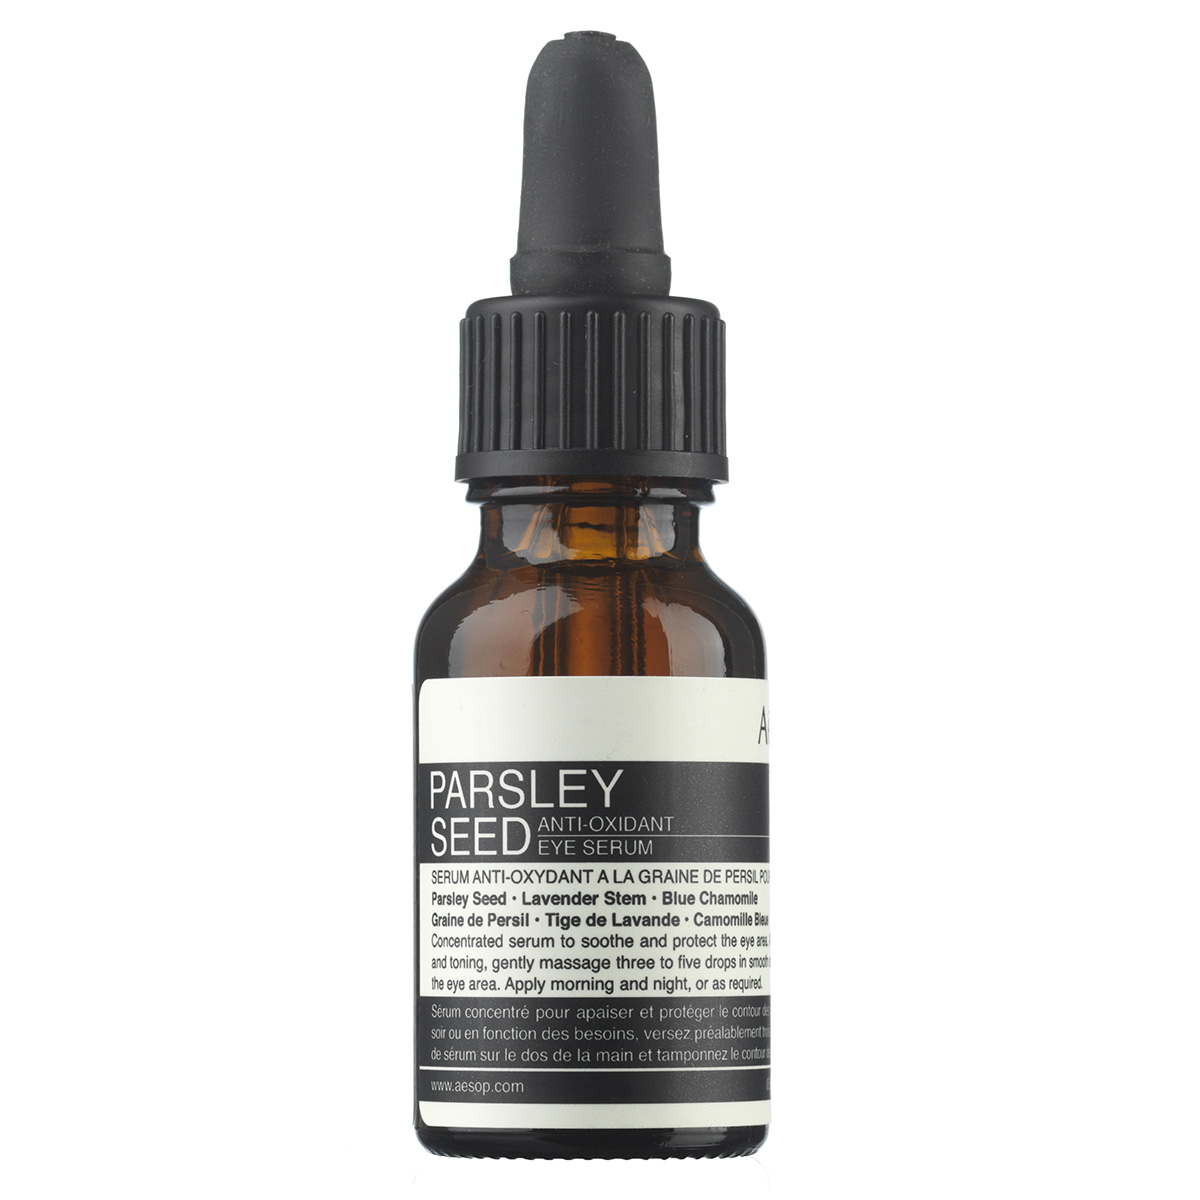 Aesop Parsley Seed Anti-Oxidant Eye Serum - 15 ml